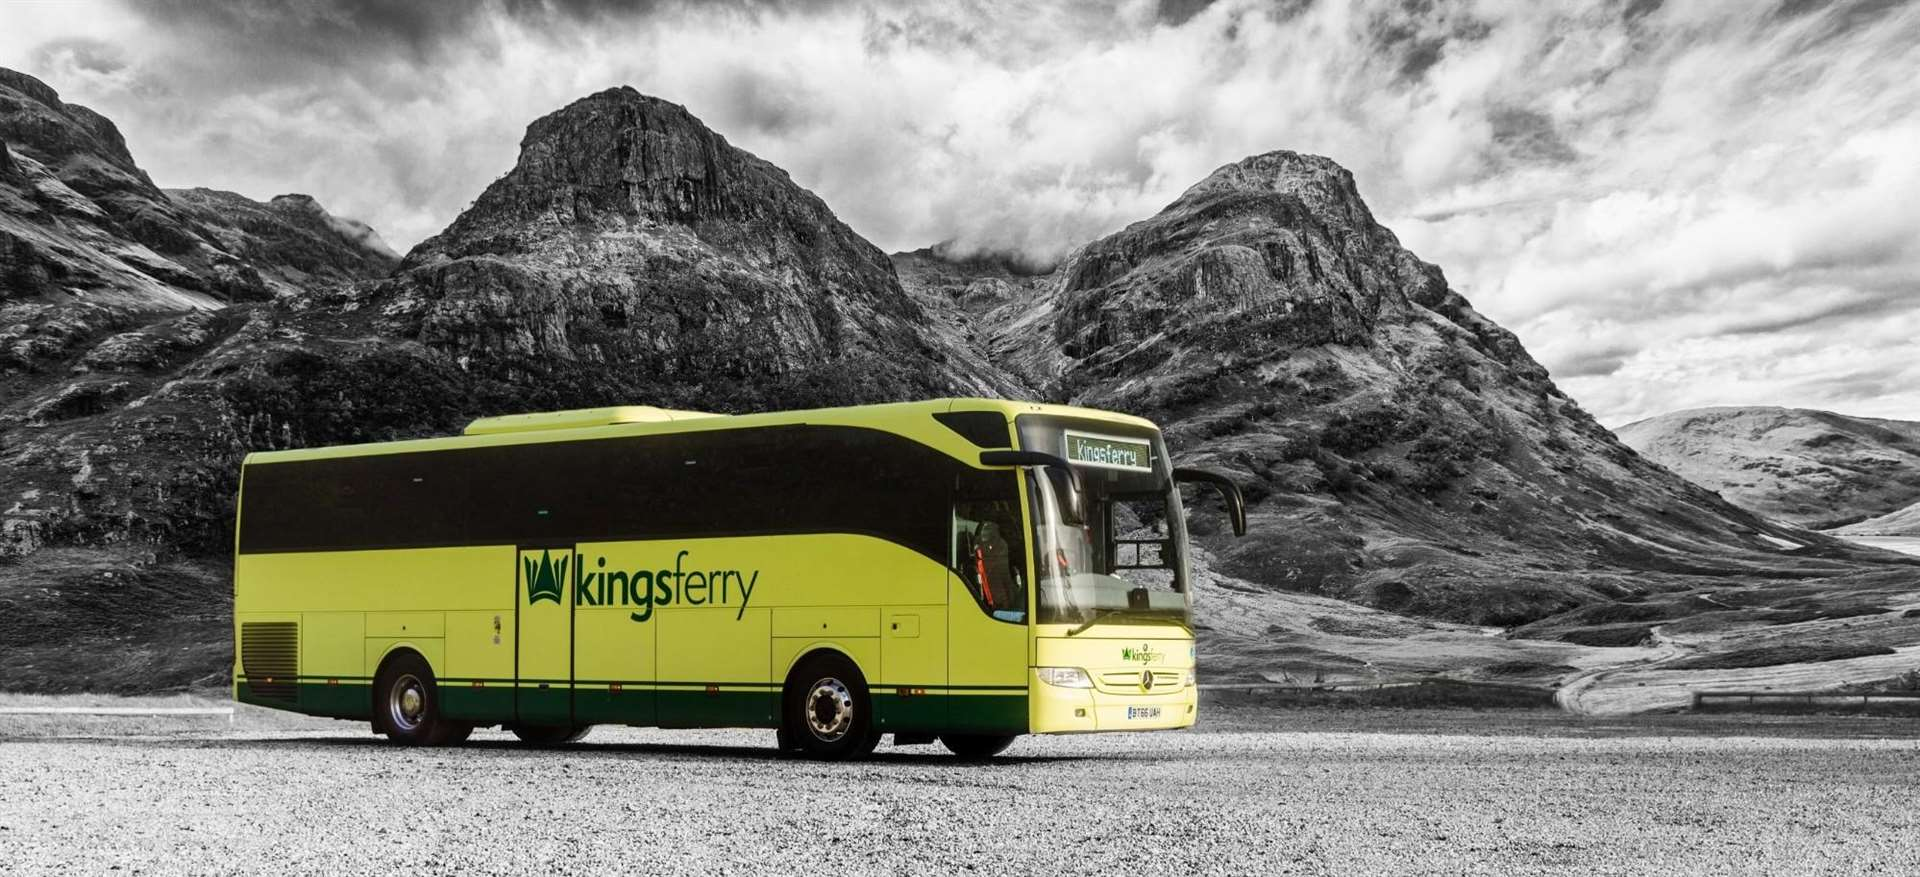 Ever considered a career as a coach driver? Then hop on board The Kings Ferry.